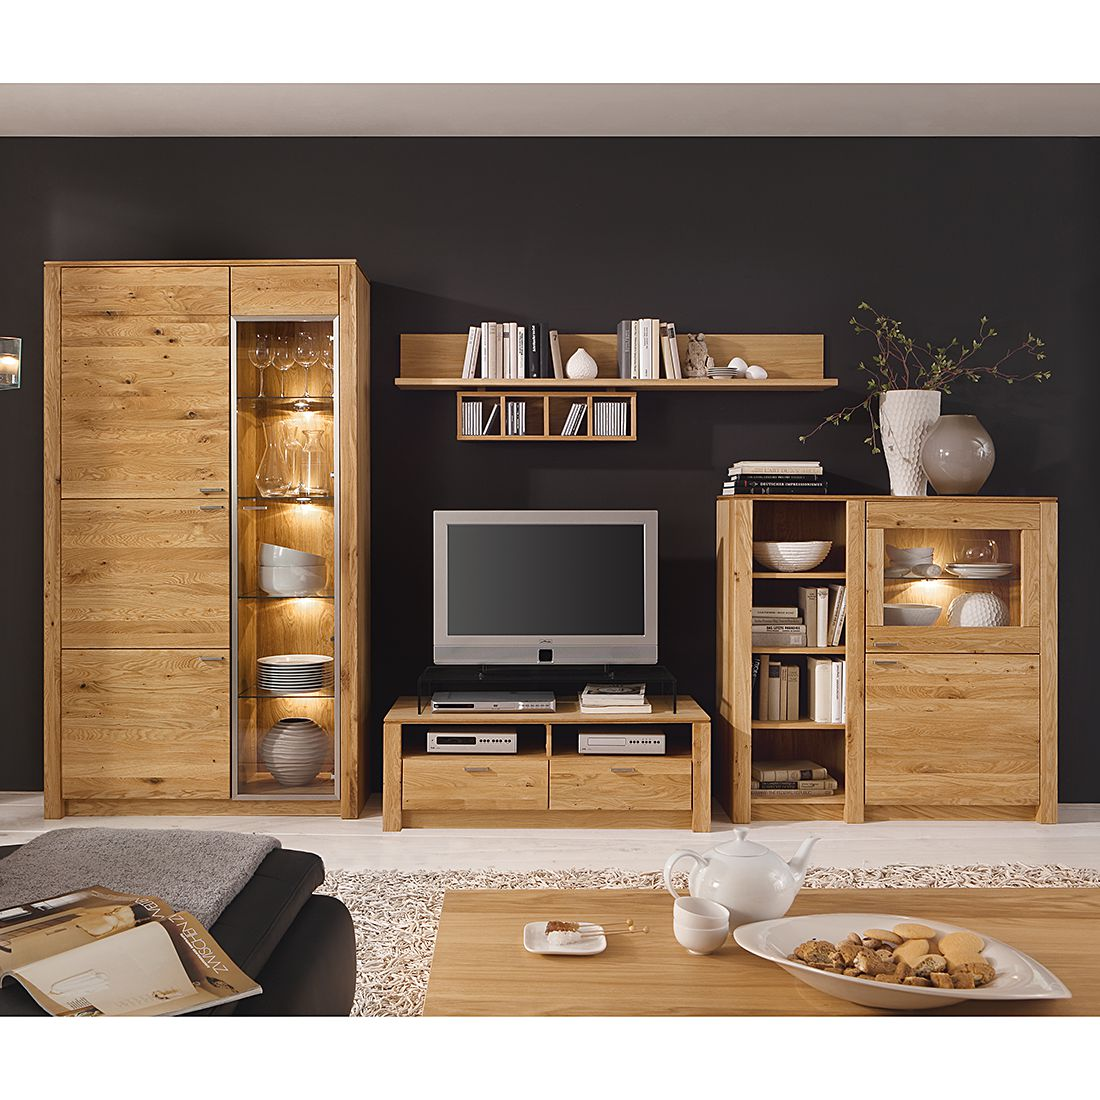 wohnwand chalet i 4 teilig eiche teilmassiv ge lt. Black Bedroom Furniture Sets. Home Design Ideas